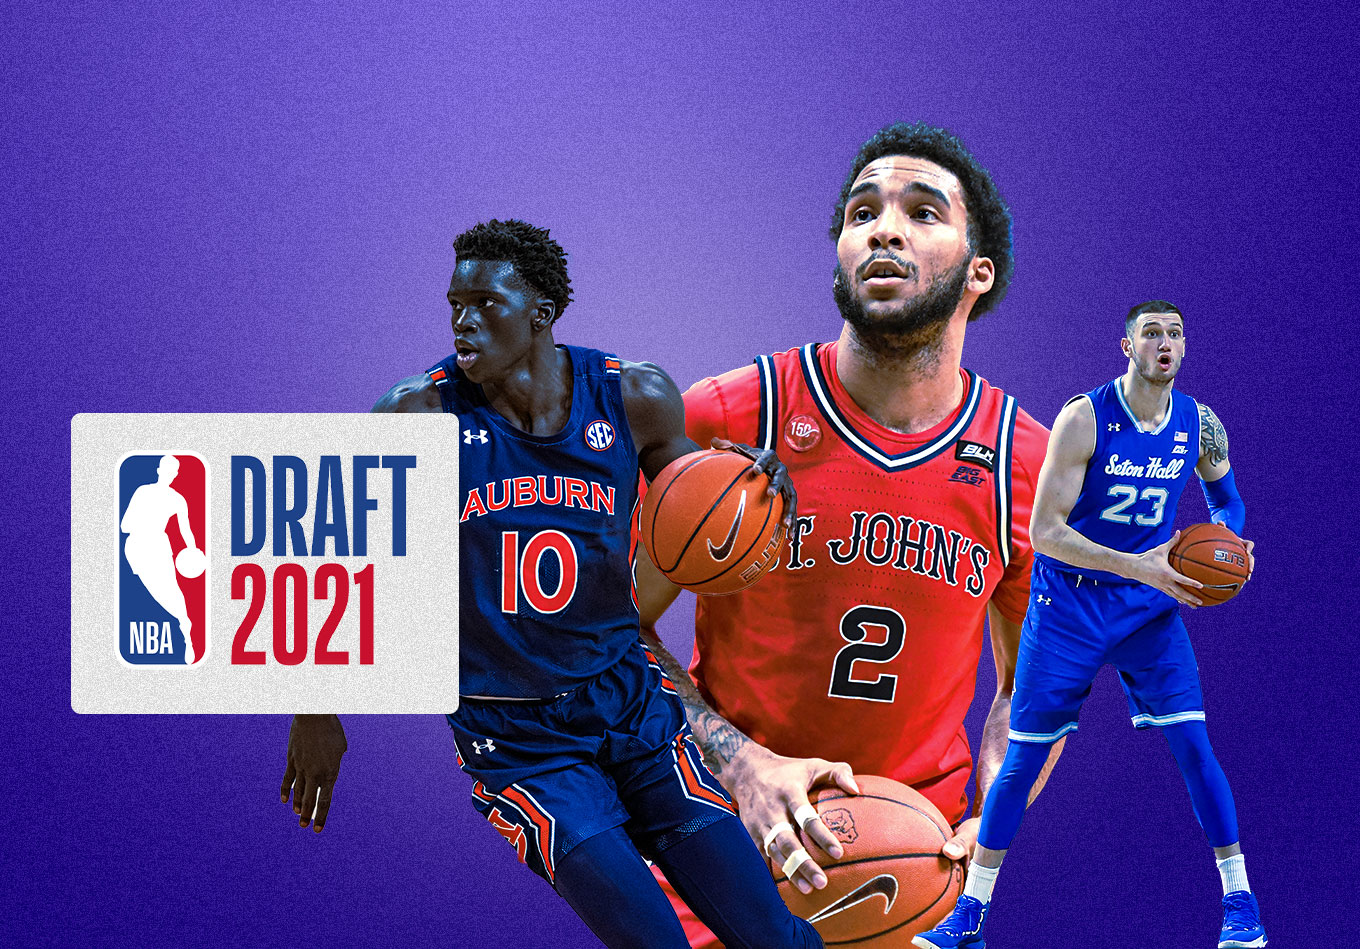 The Draft Files Mailbag: Our Model's NBA Player Comparisons (Part 2)